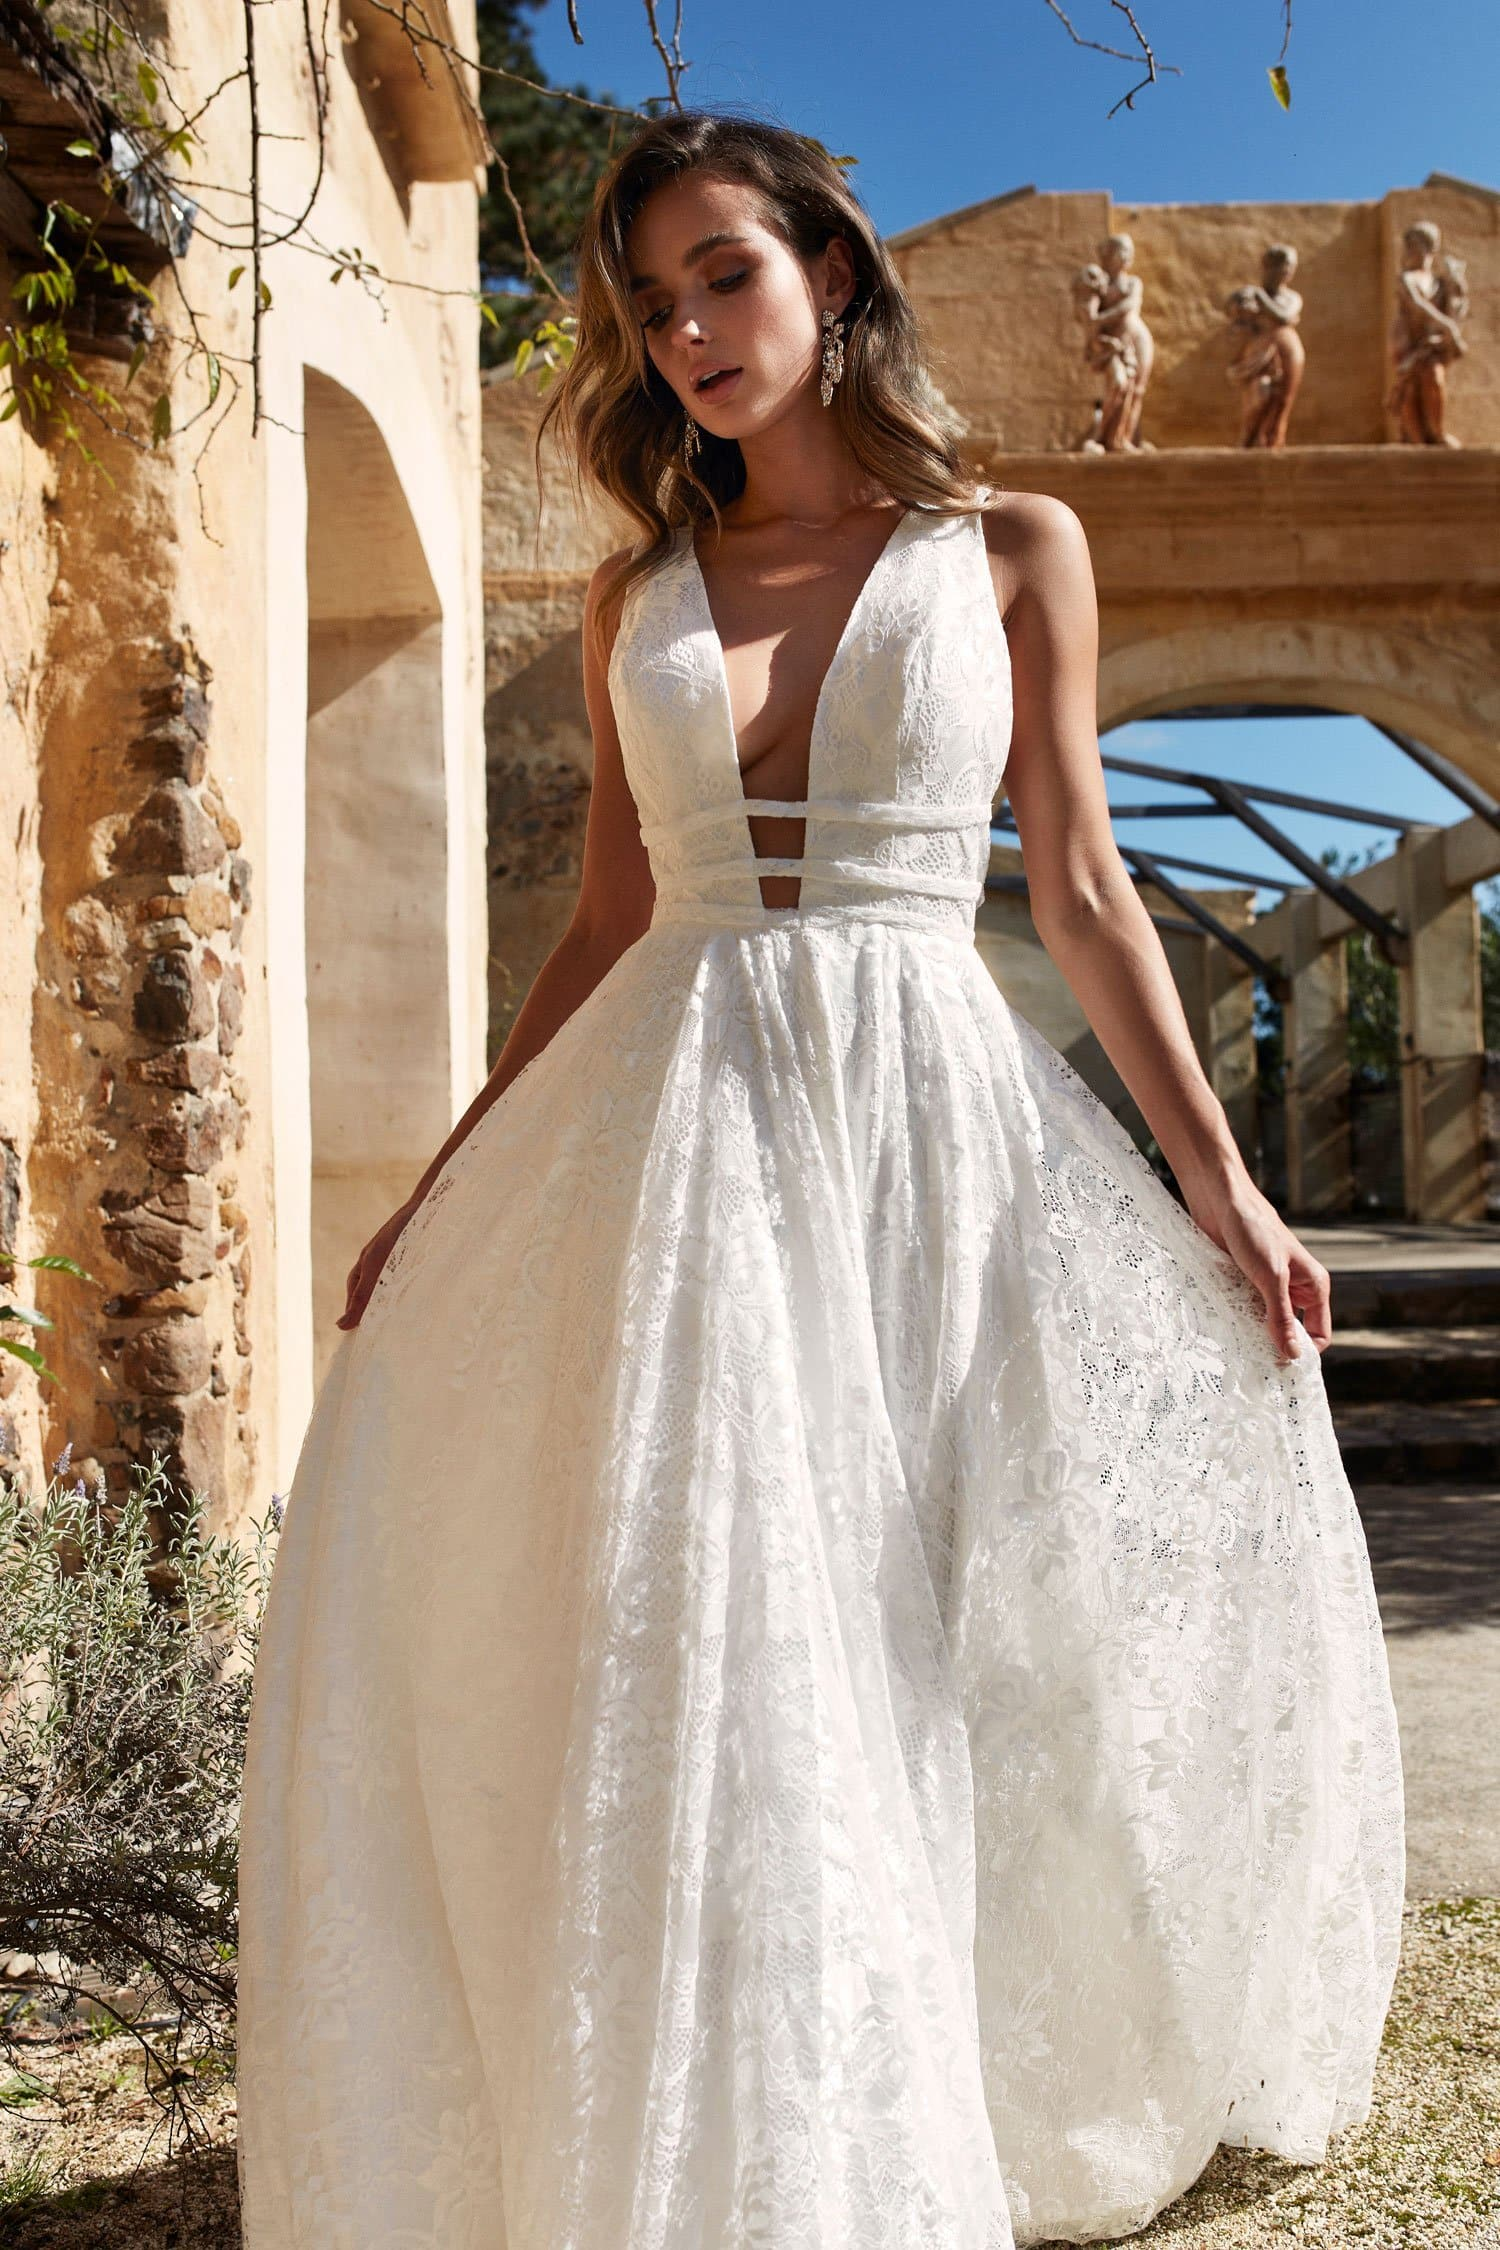 ab206e277e3 A N Talia - White Lace Gown with Plunge V Neck and Low Back – A N ...